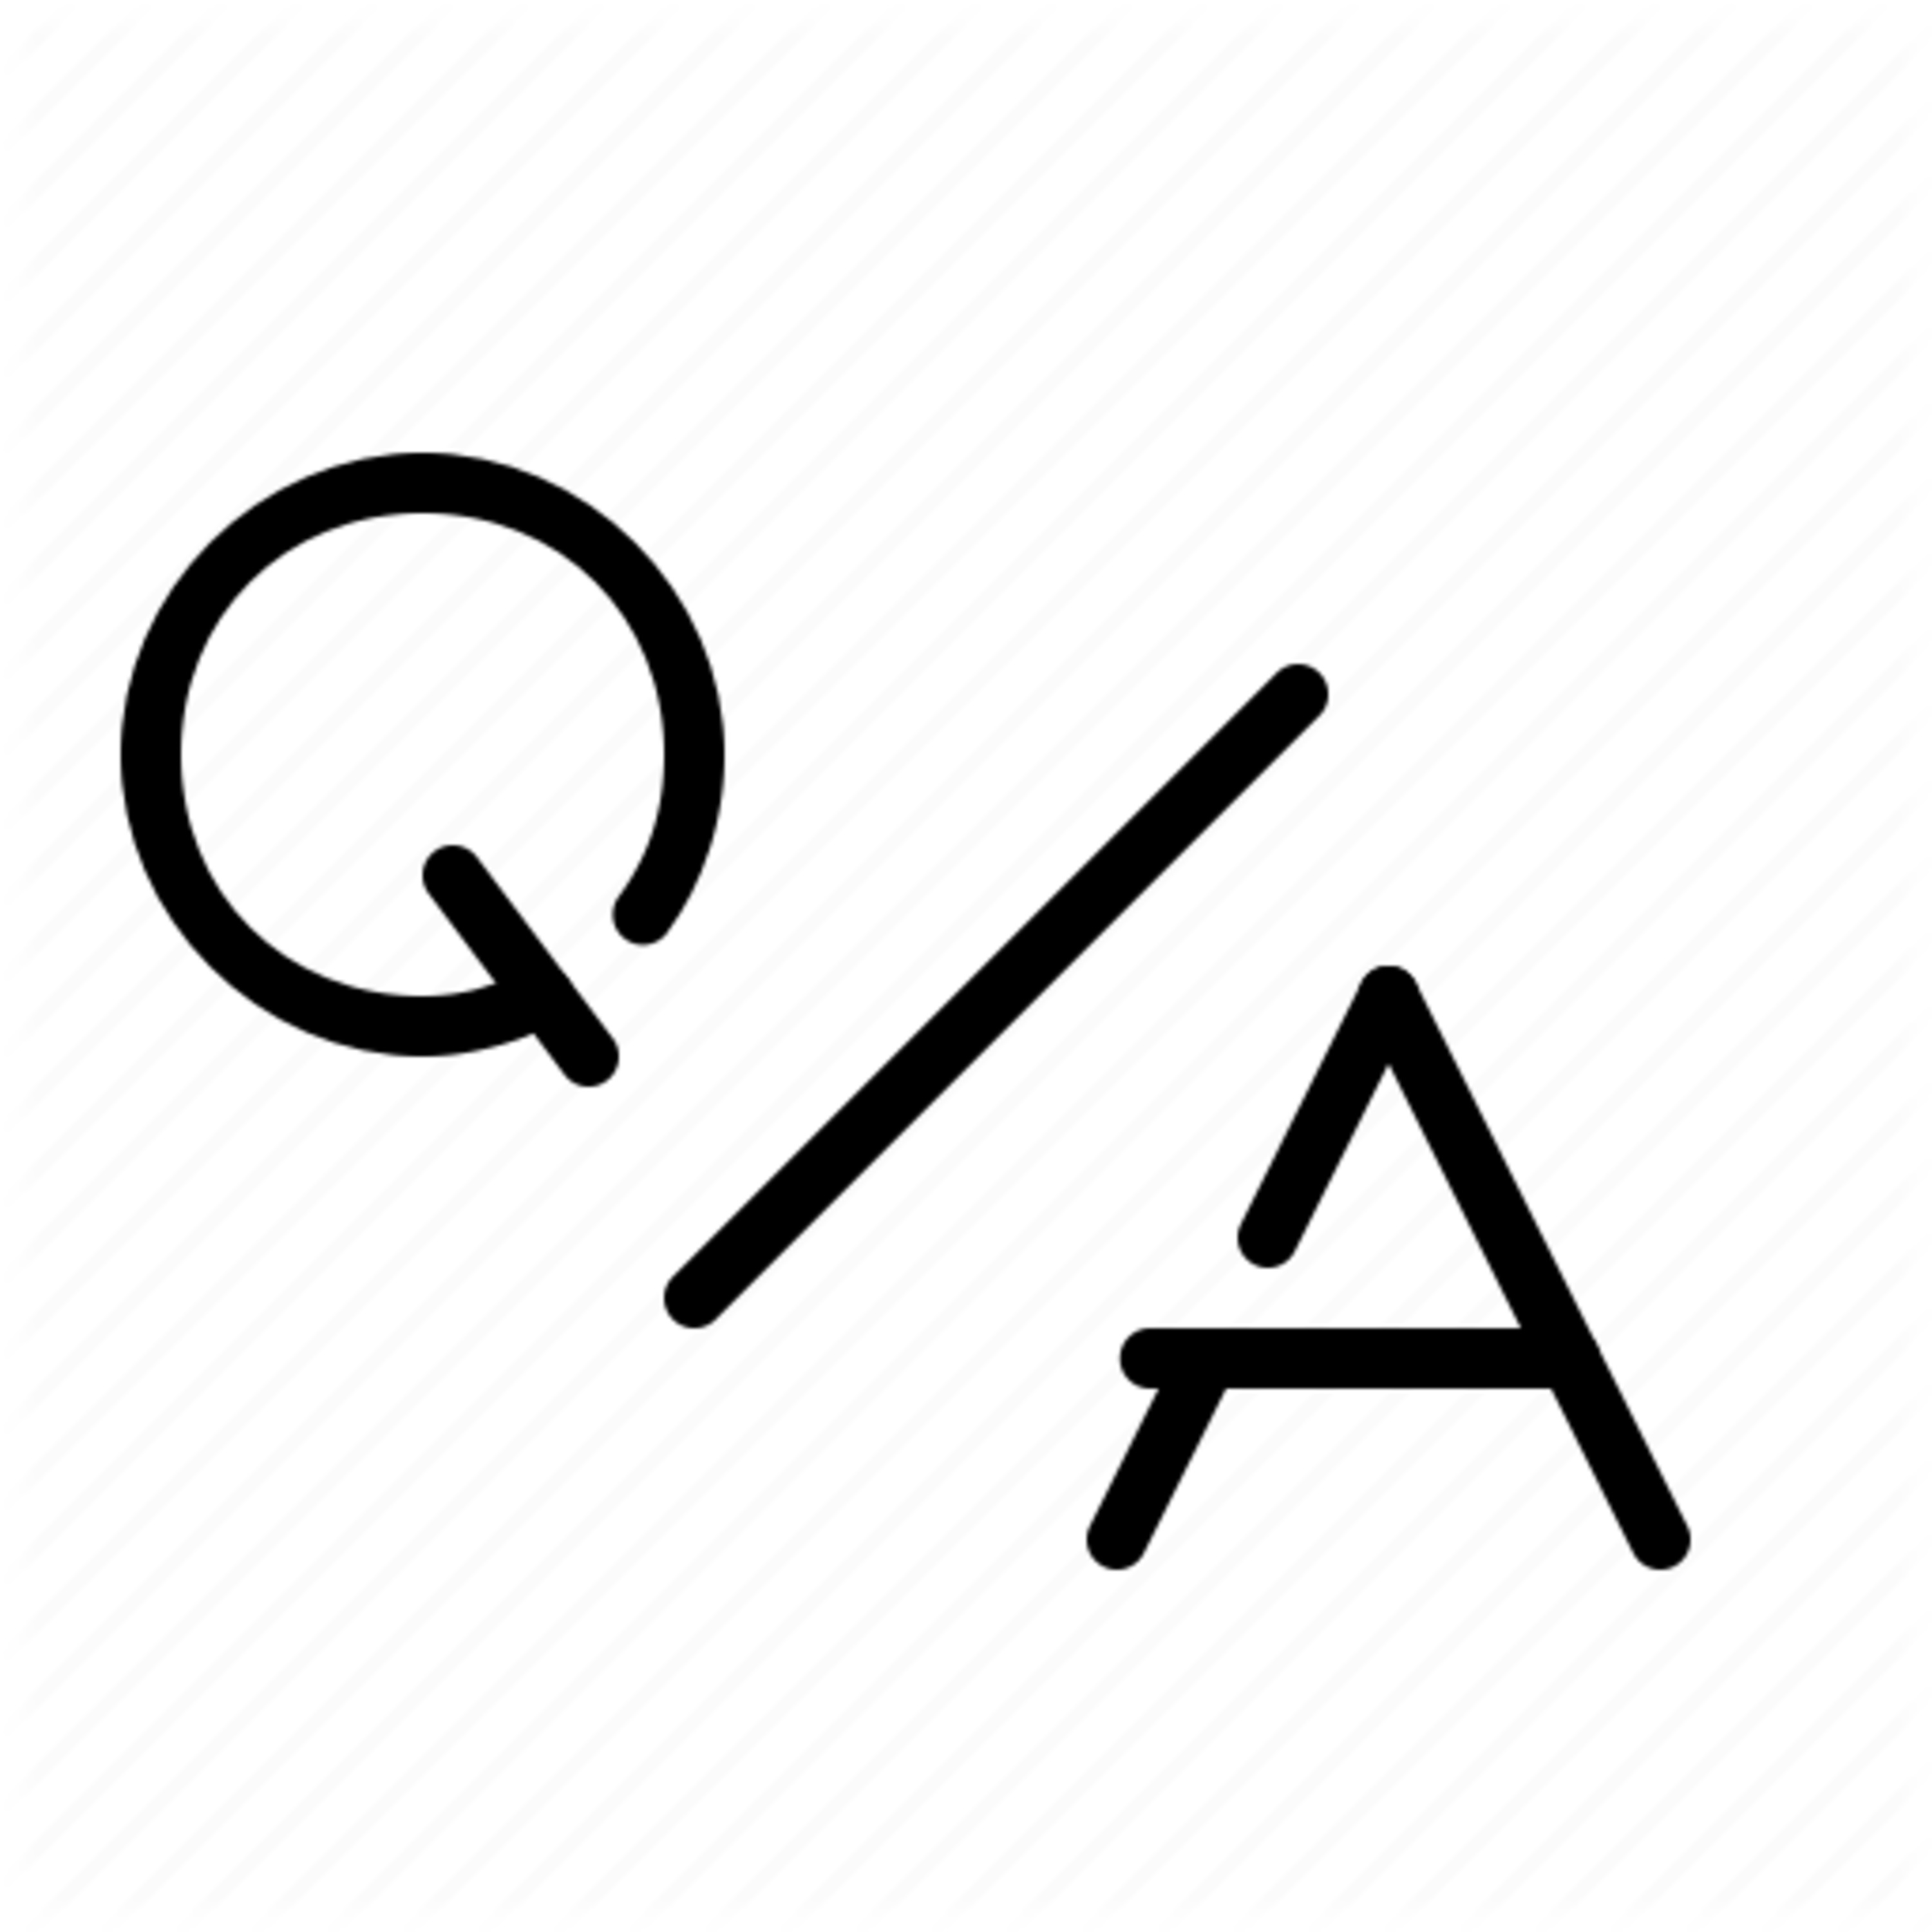 Q&A - Should I be learning complex concepts for interviews? DP? Concurrency?